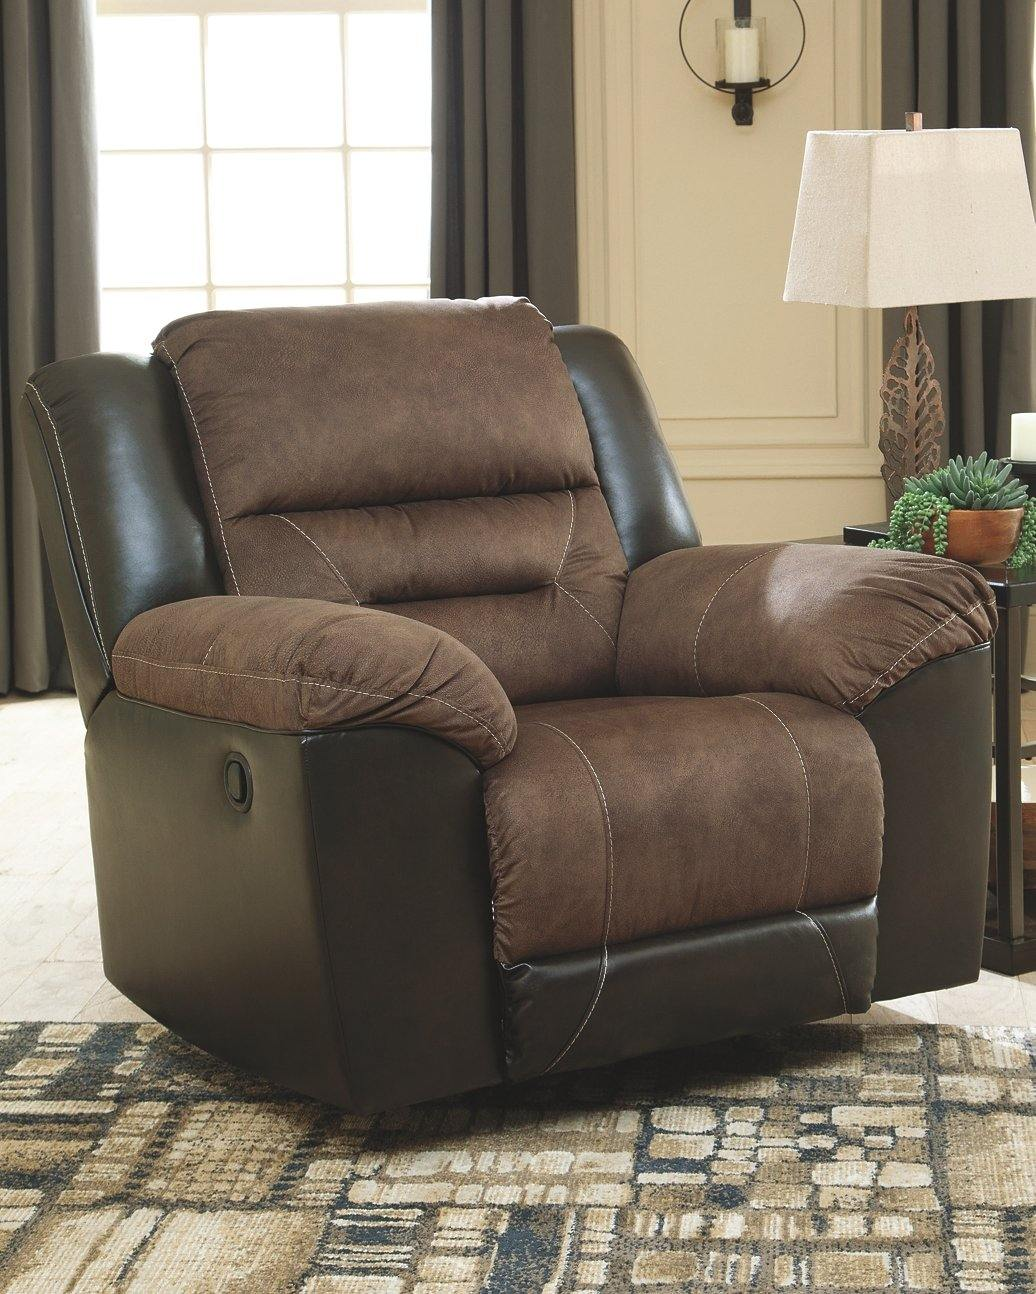 Earhart Recliner 2910125 By Ashley Furniture from sofafair